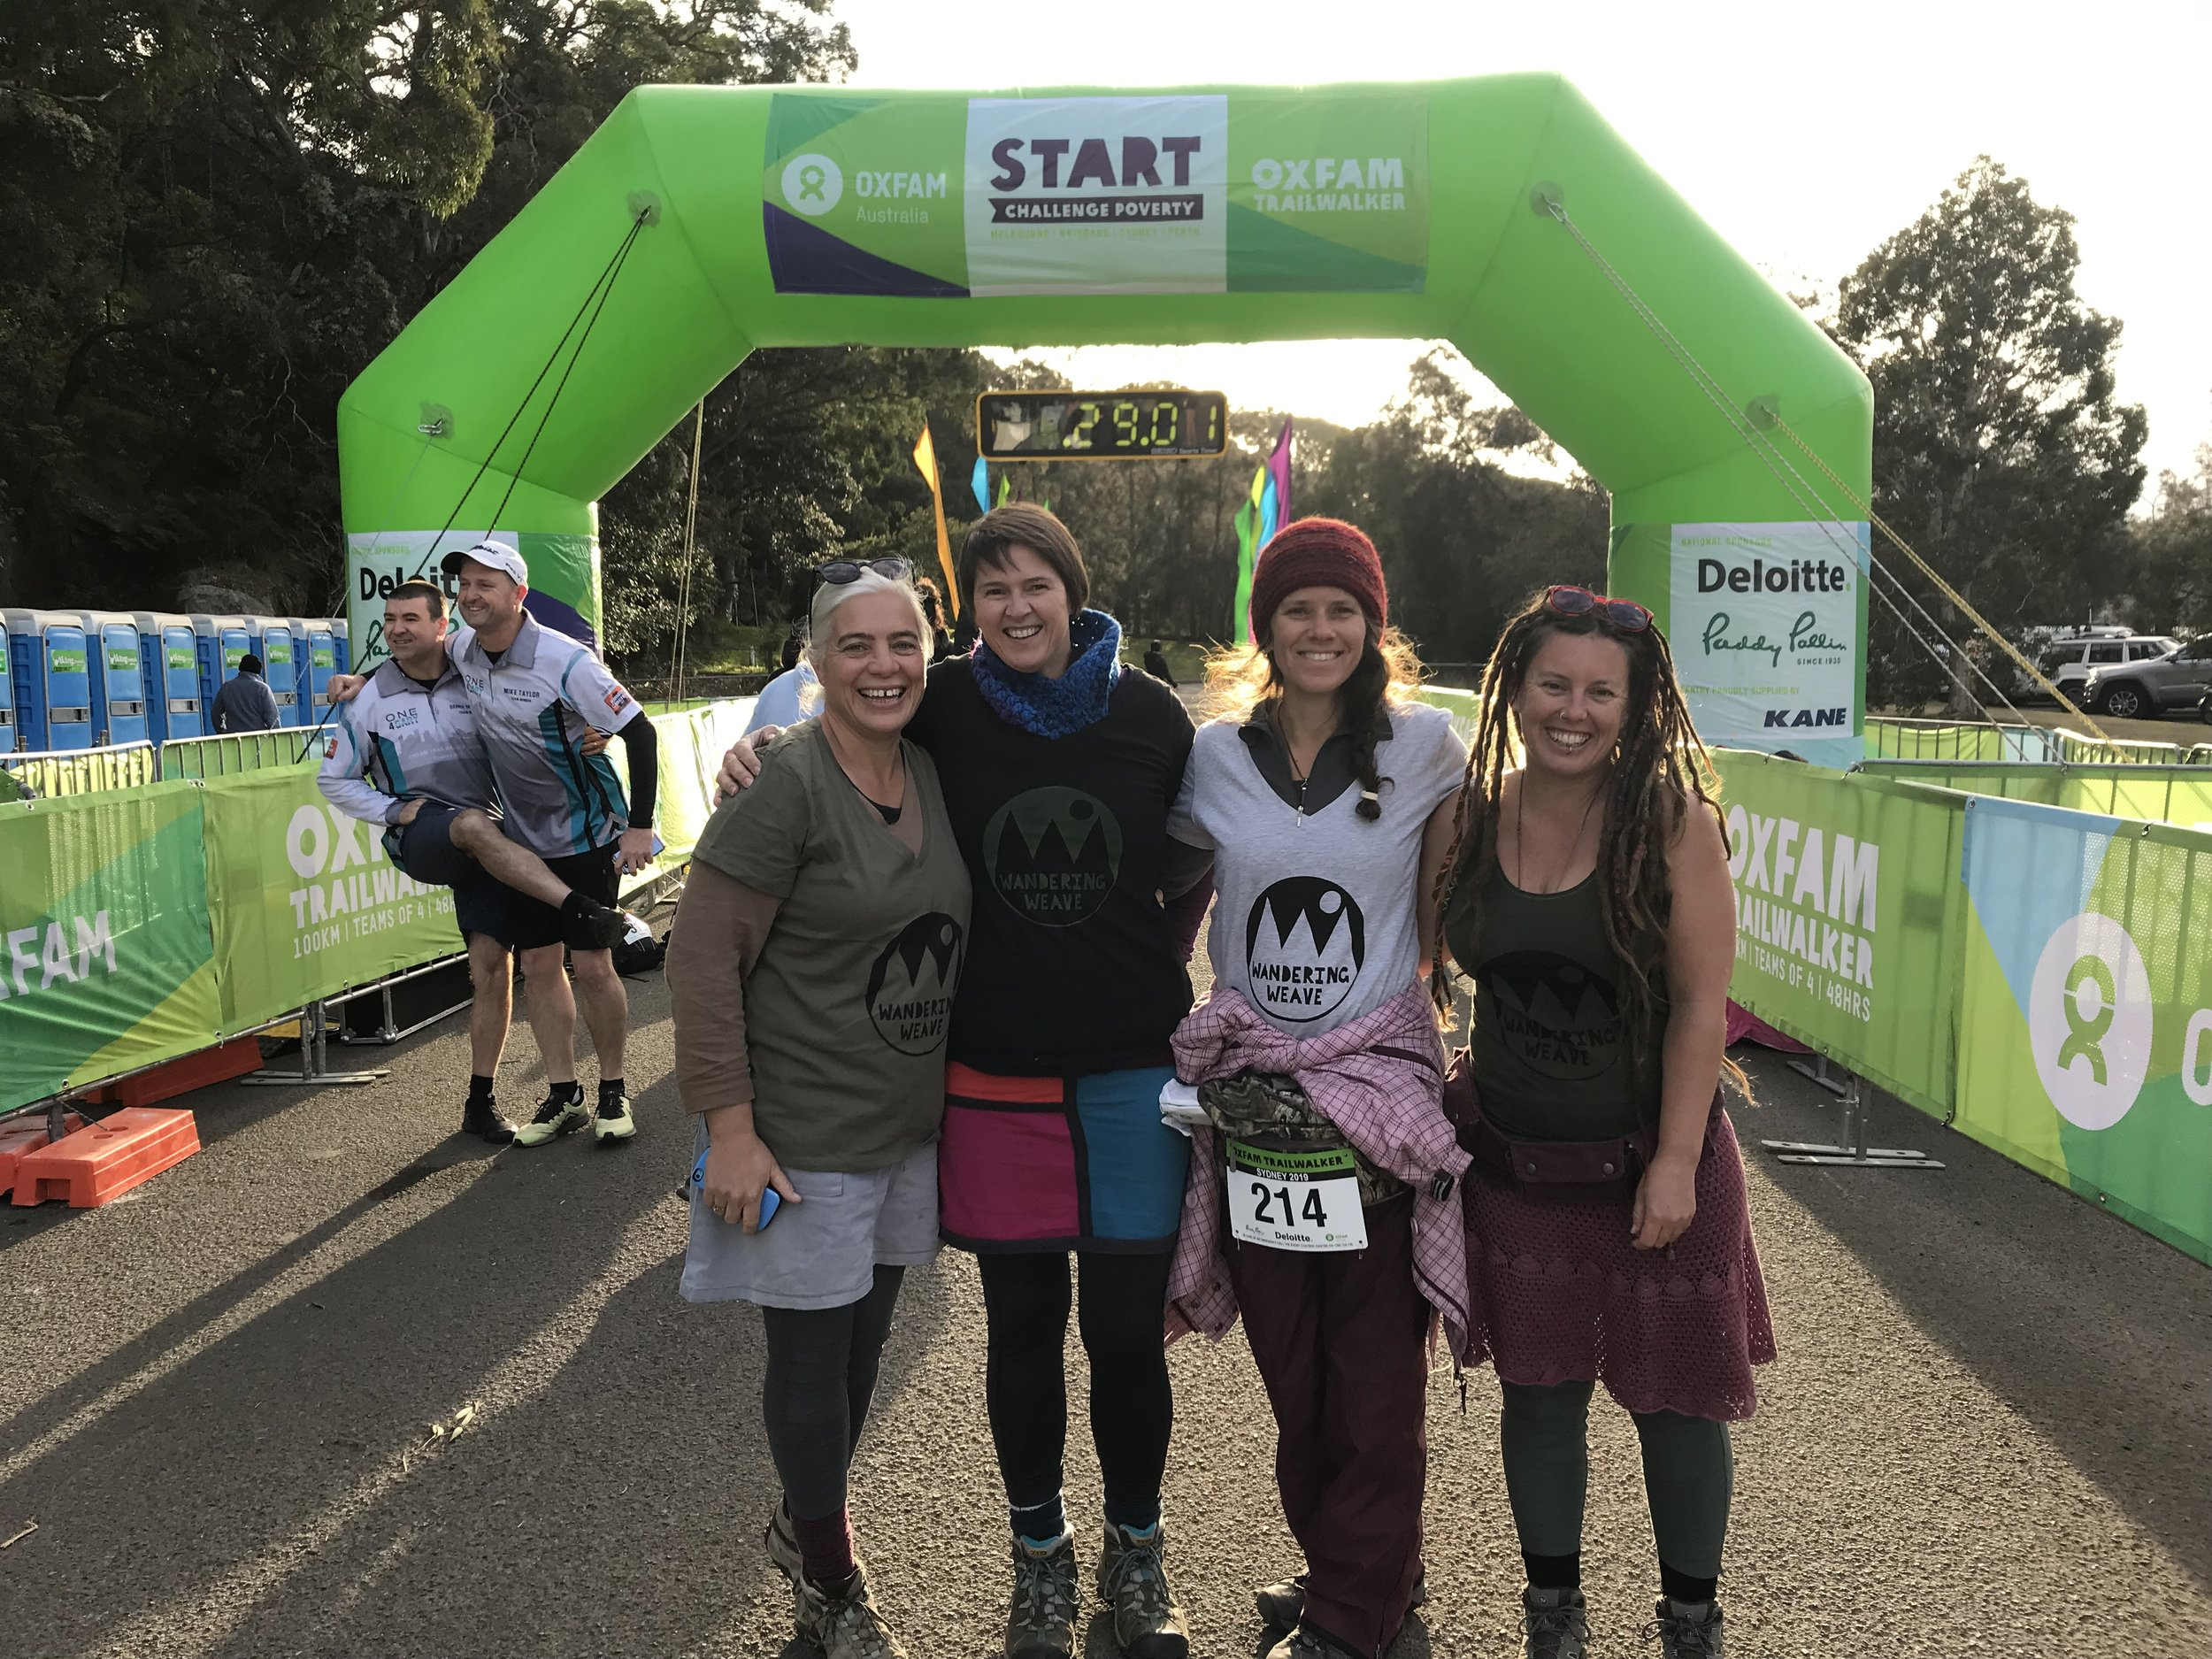 At the starting point, left to right is Tanya, Mirjam, Vera (words drafted by) and Rachael